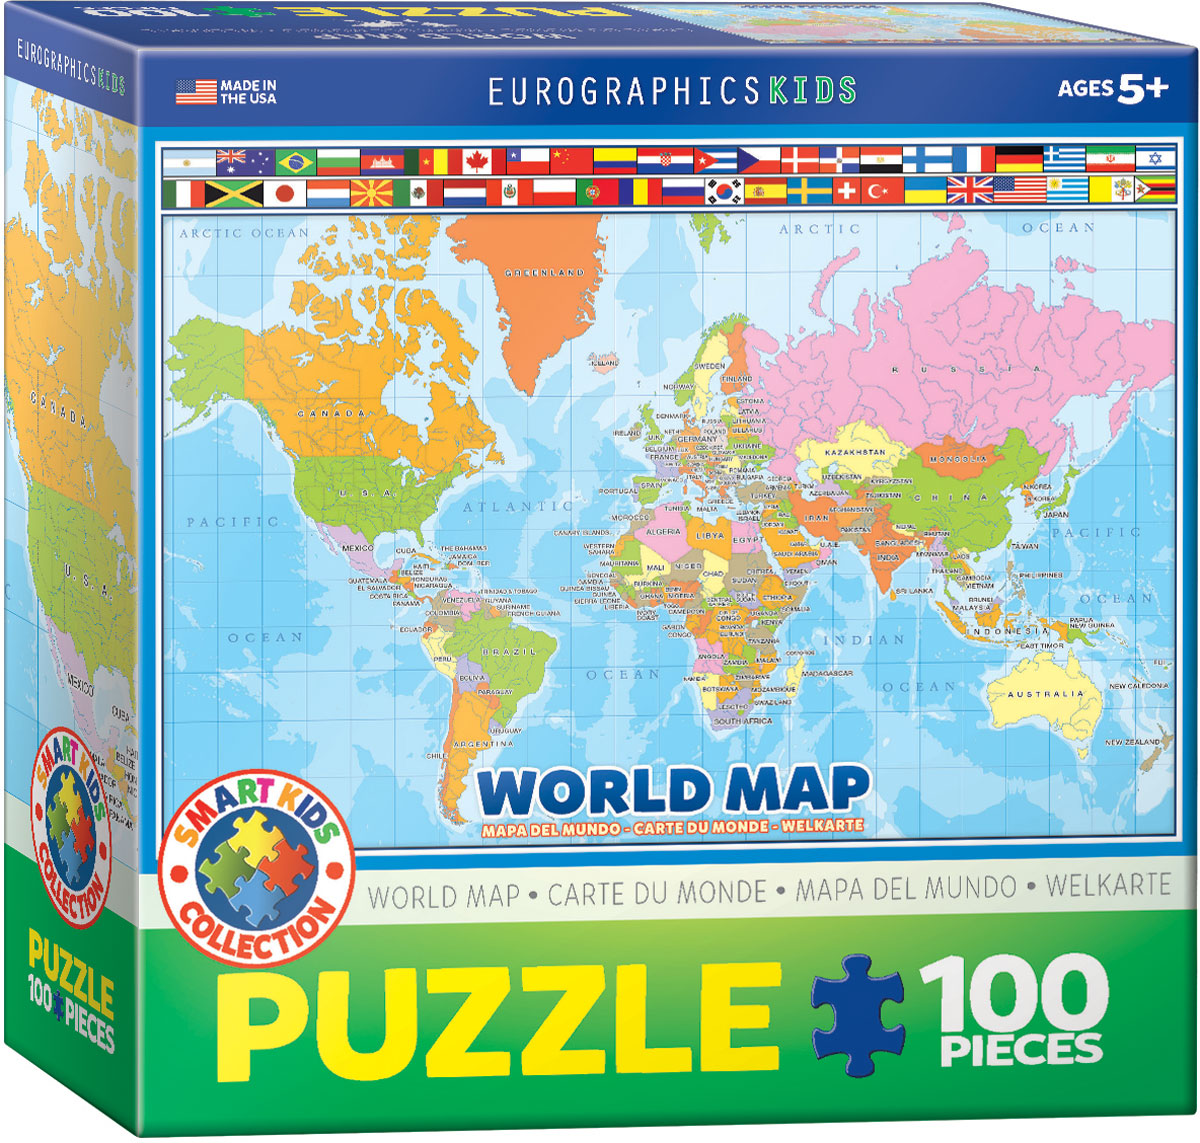 100 piece World Map Puzzle